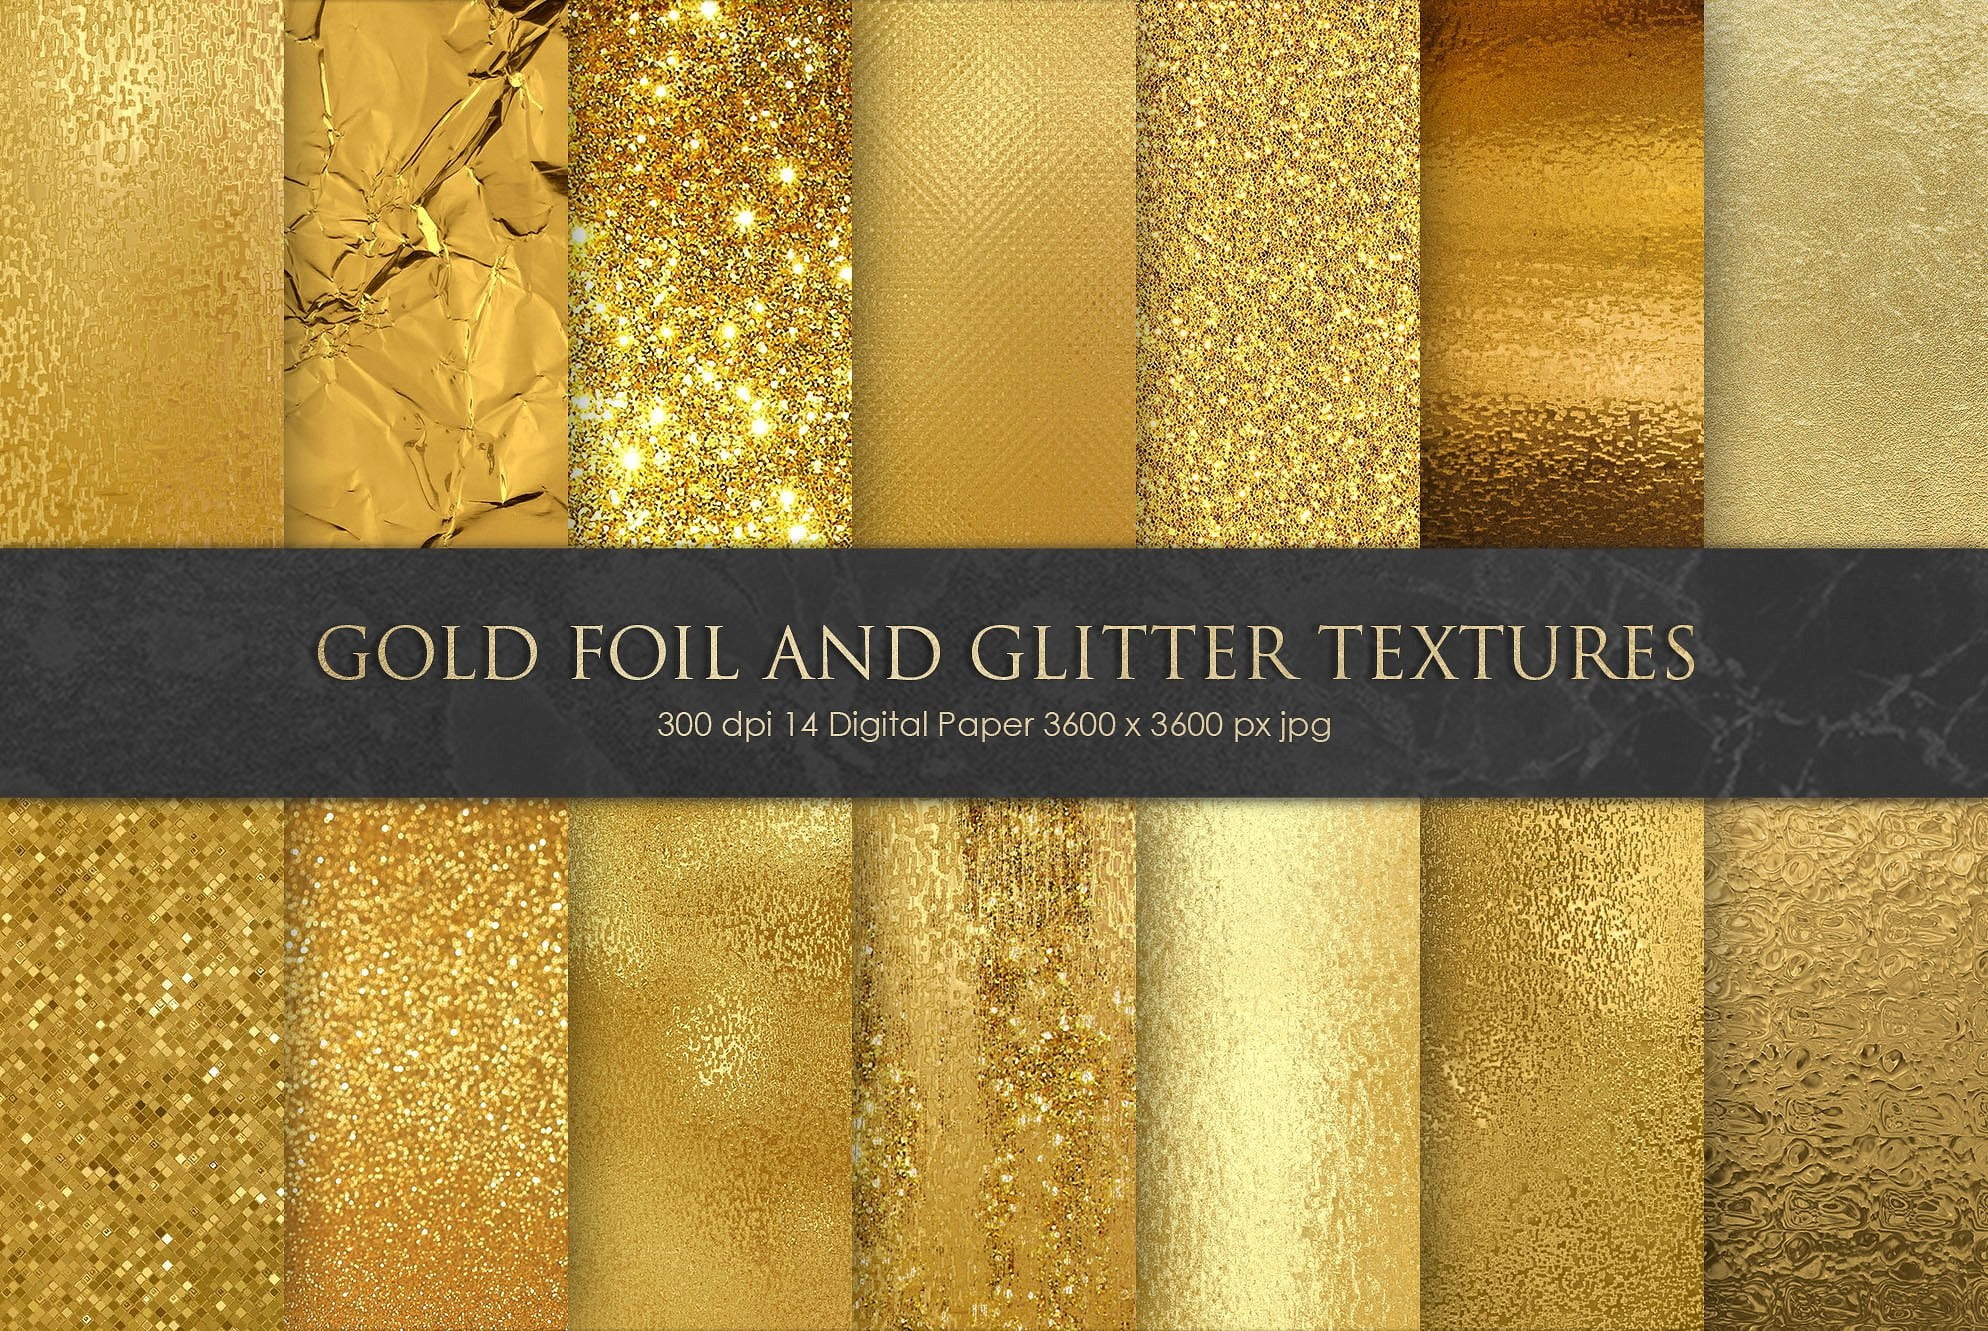 1000+ Yellow Background: Cheap Stock Photos & Images .jpg - gold foil and glitter textures